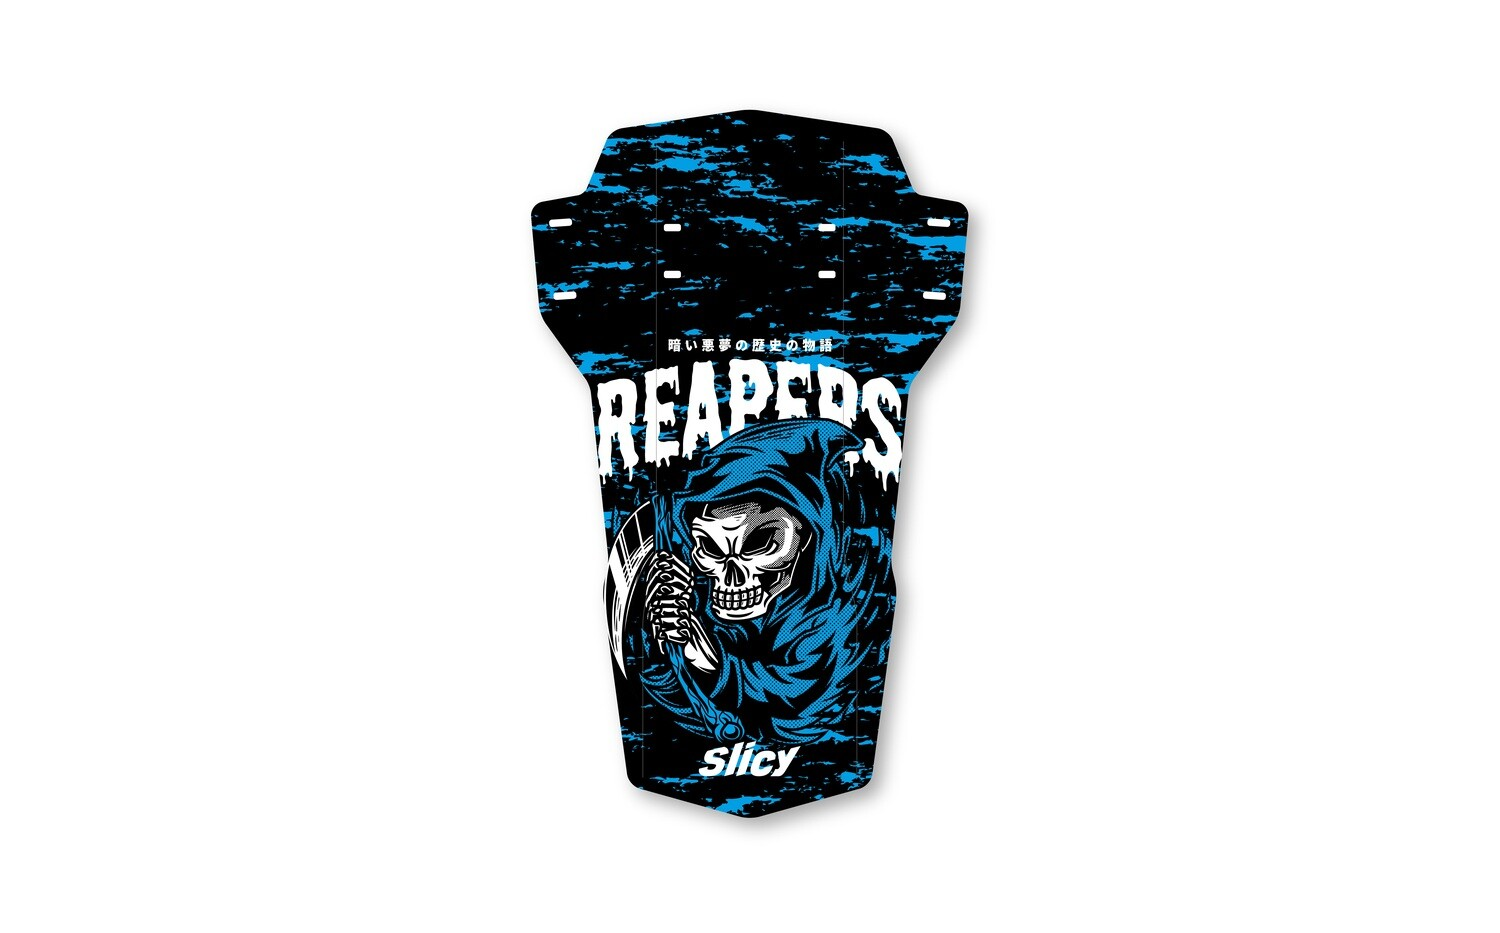 Slicy All Mountain mudguard - REAPERS